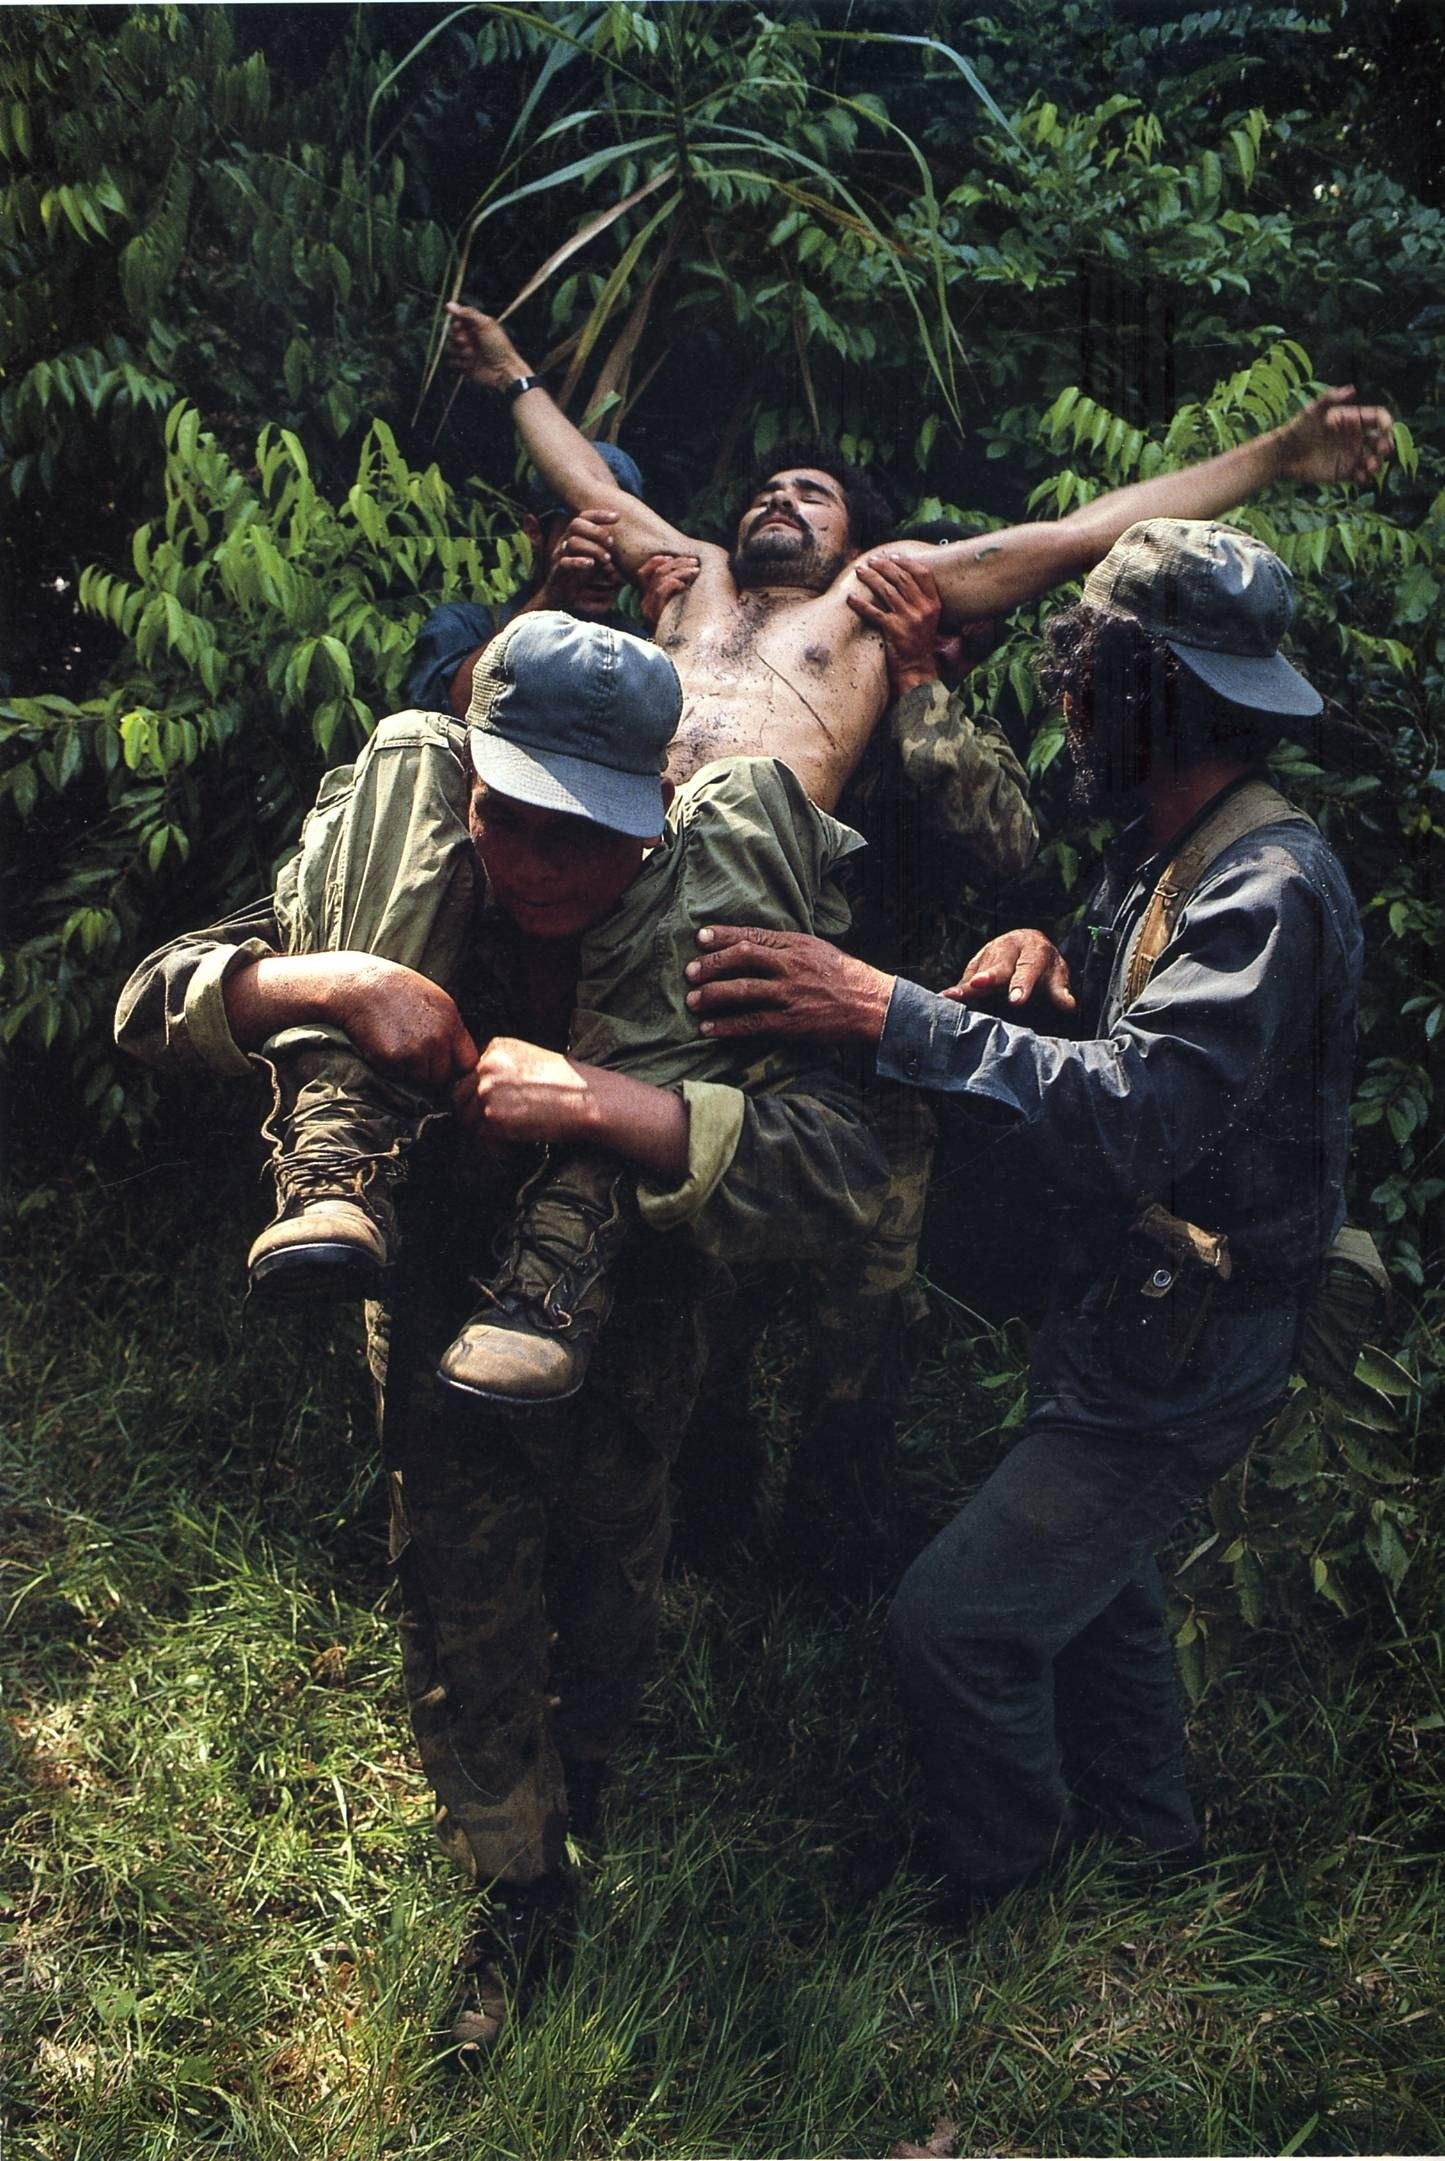 A dead or injured man is carried out of a jungle setting by soldiers with his arms extended, looking like Christ on the cross